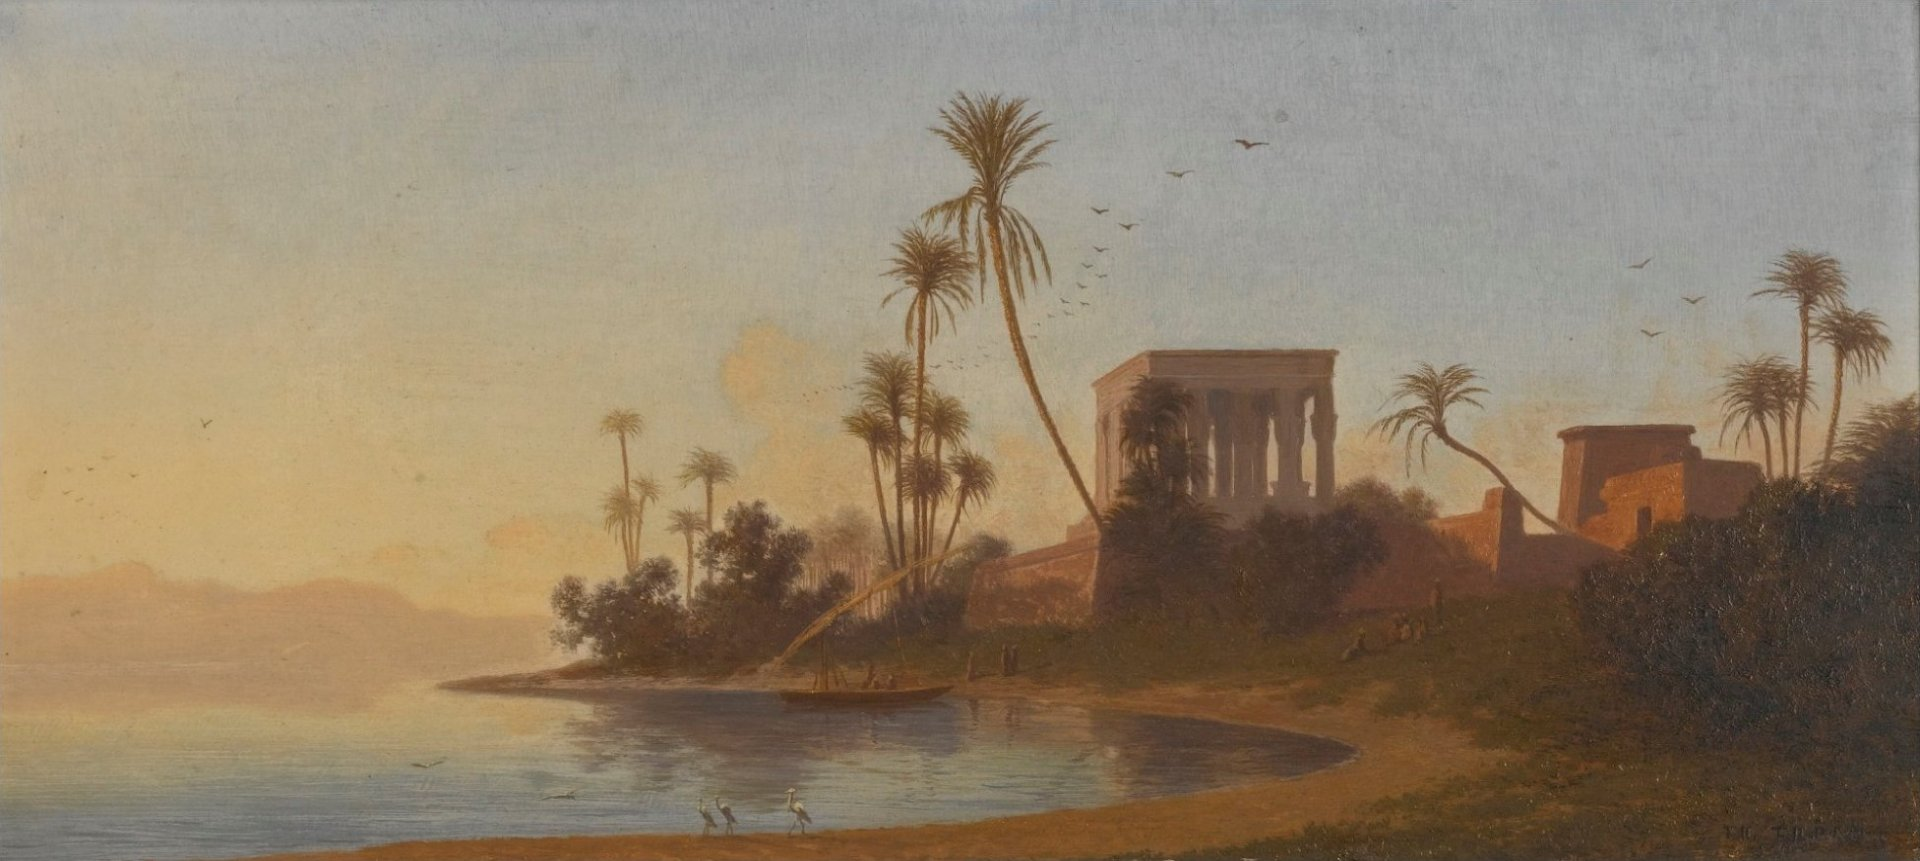 'Temple_of_Philae'_by_Charles-Théodore_Frère.jpg